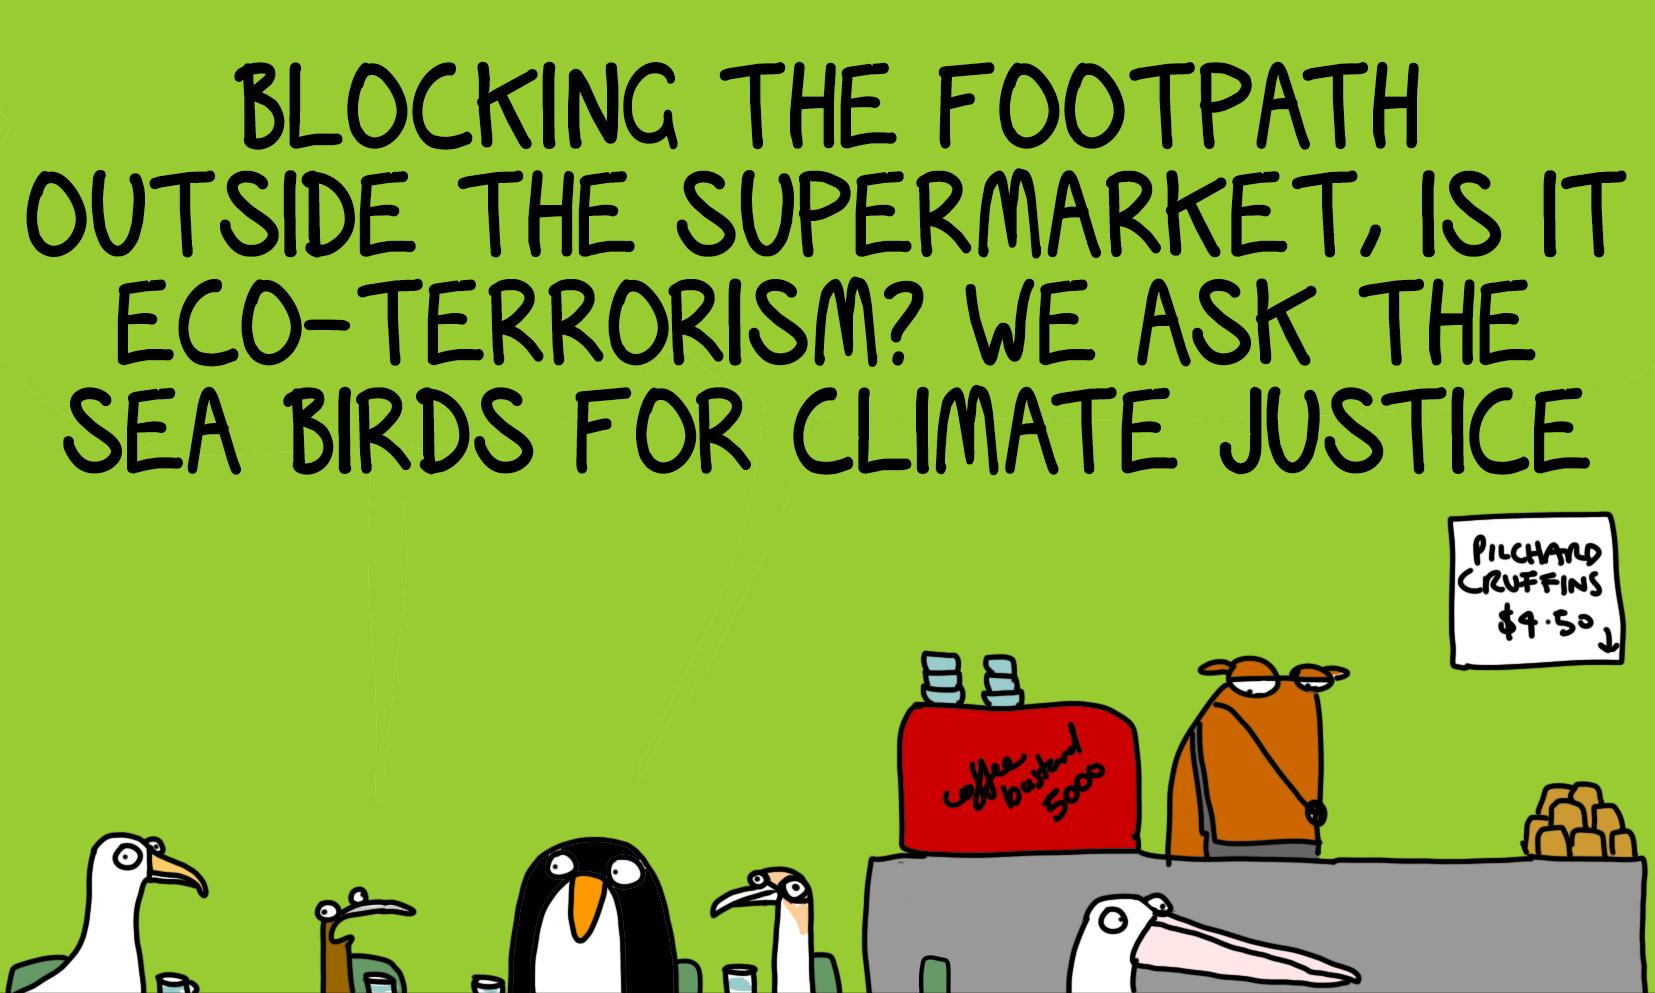 Ecoterrorism? Maybe we should start with ringing the doorbell of a mining magnate's house